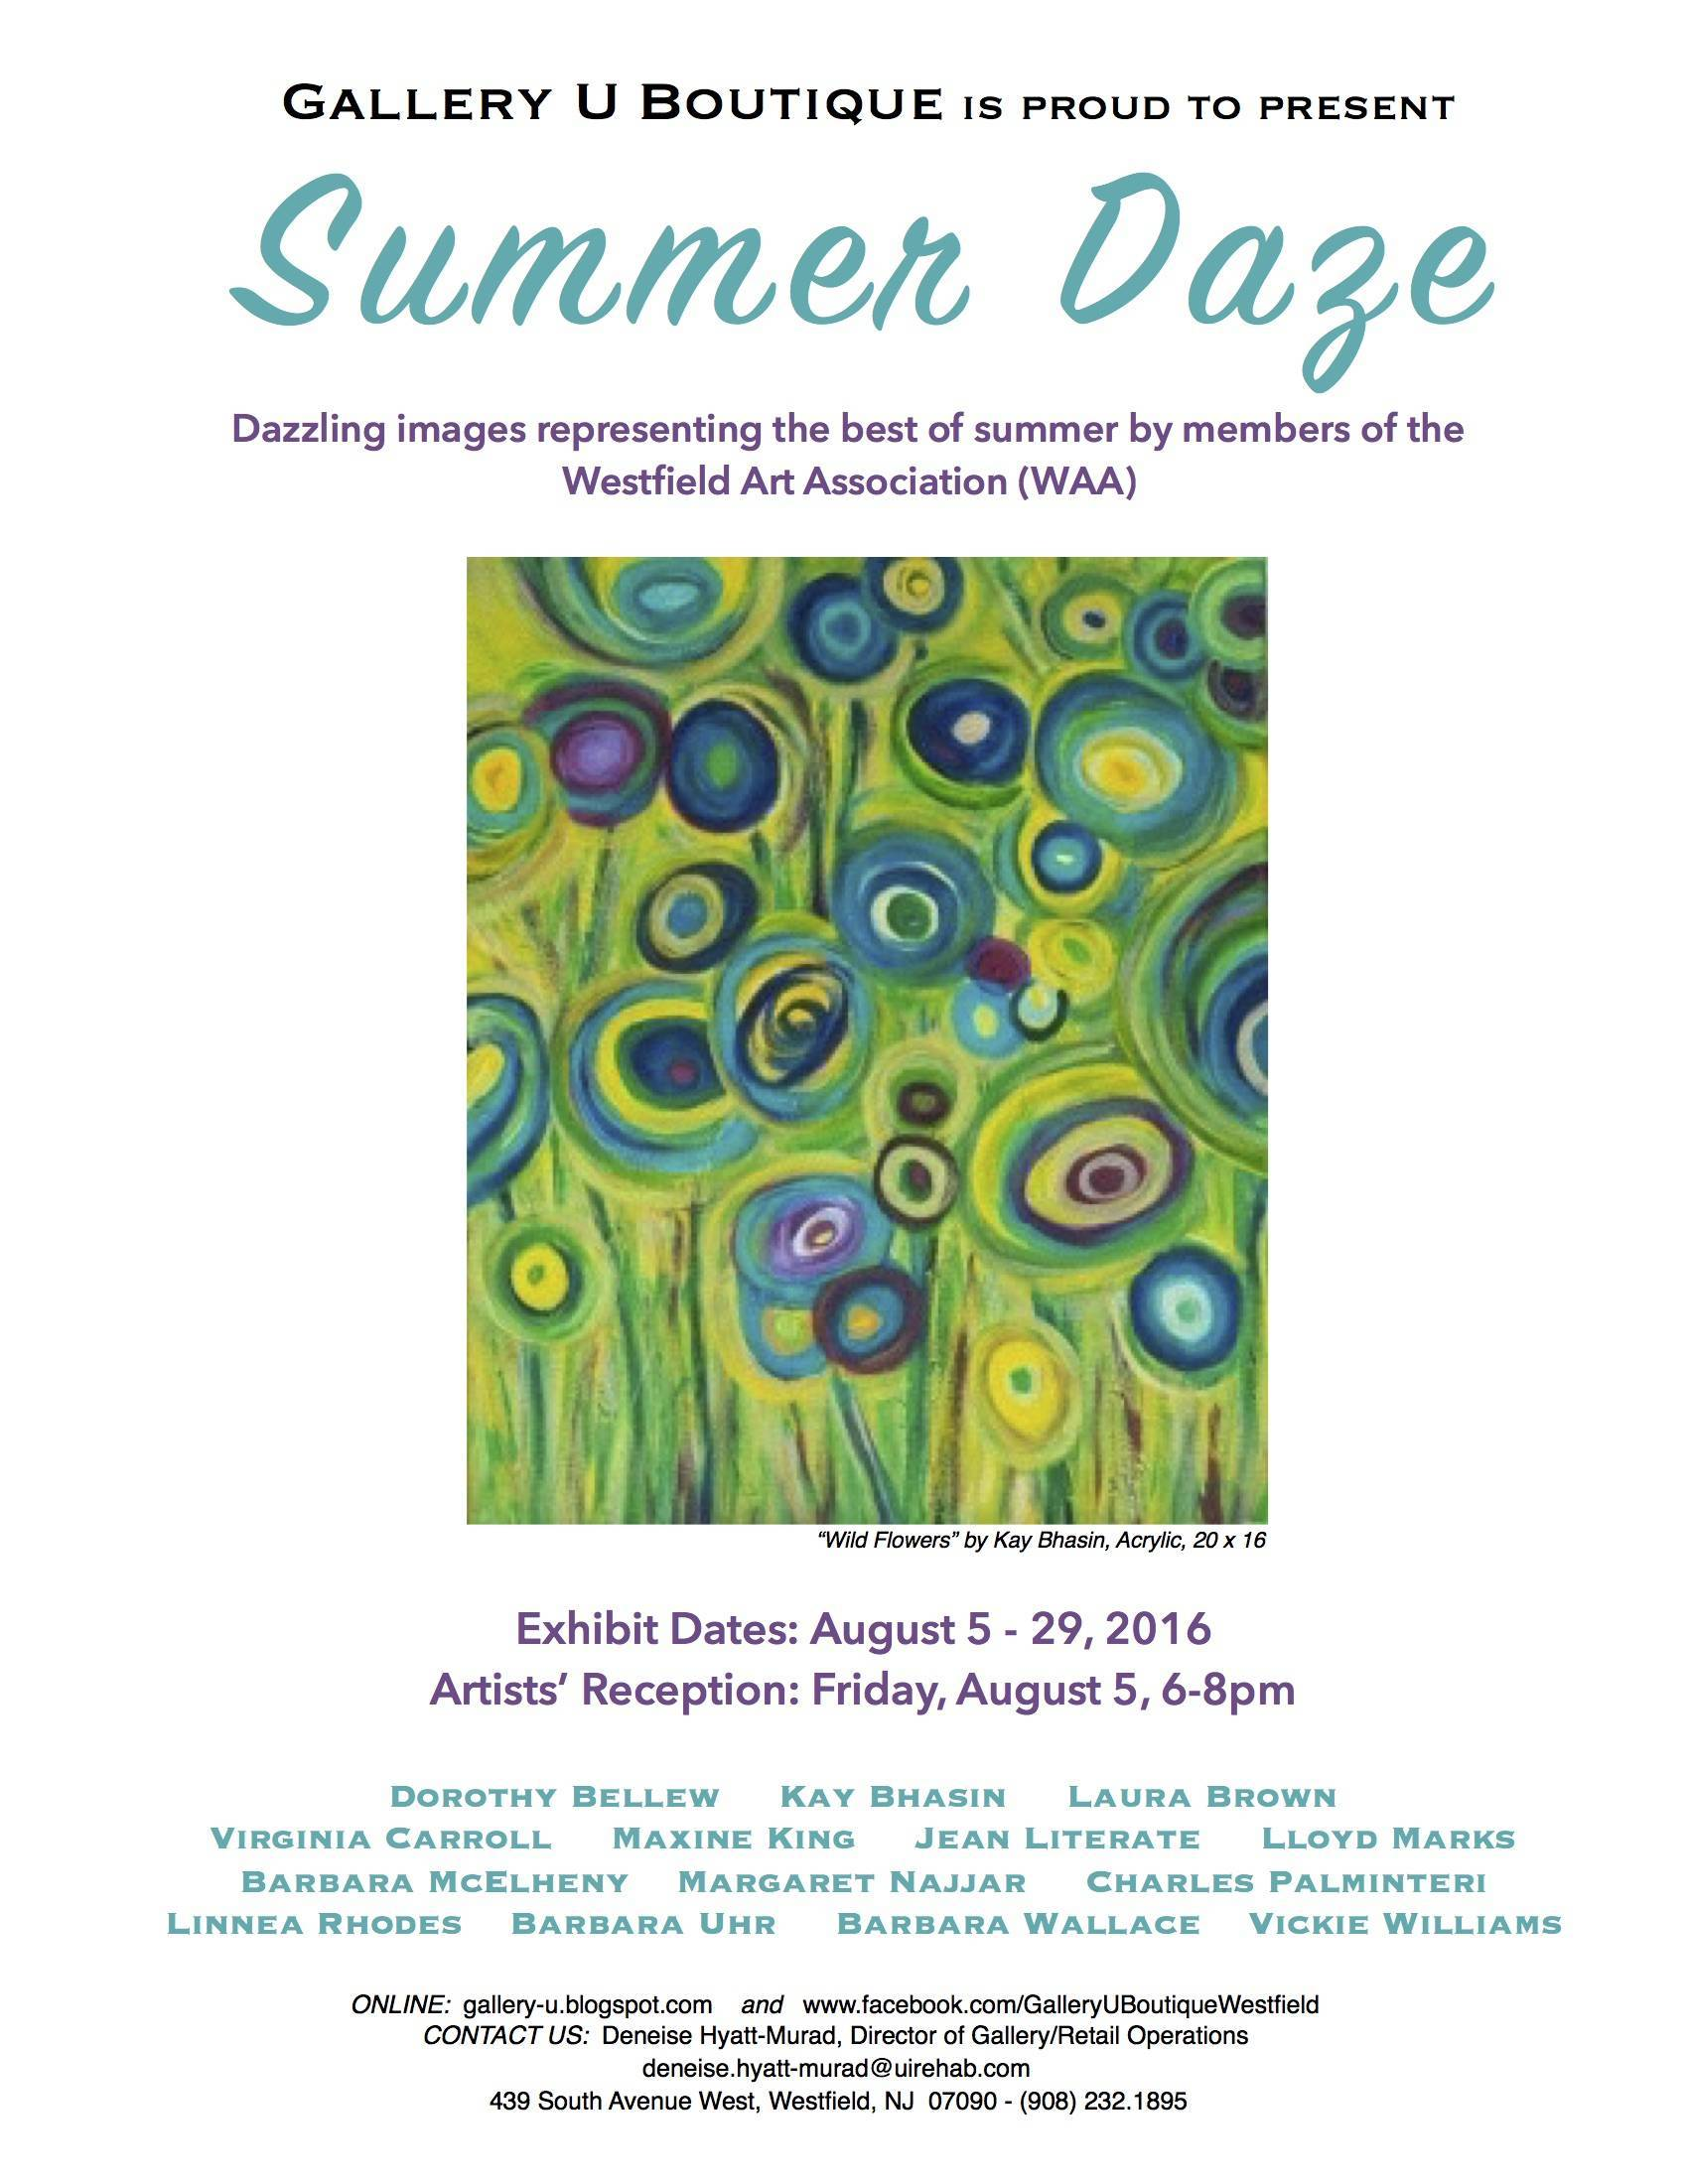 125f36528f9344eef827_August_2016_summer_daze_flier_JPG.jpg